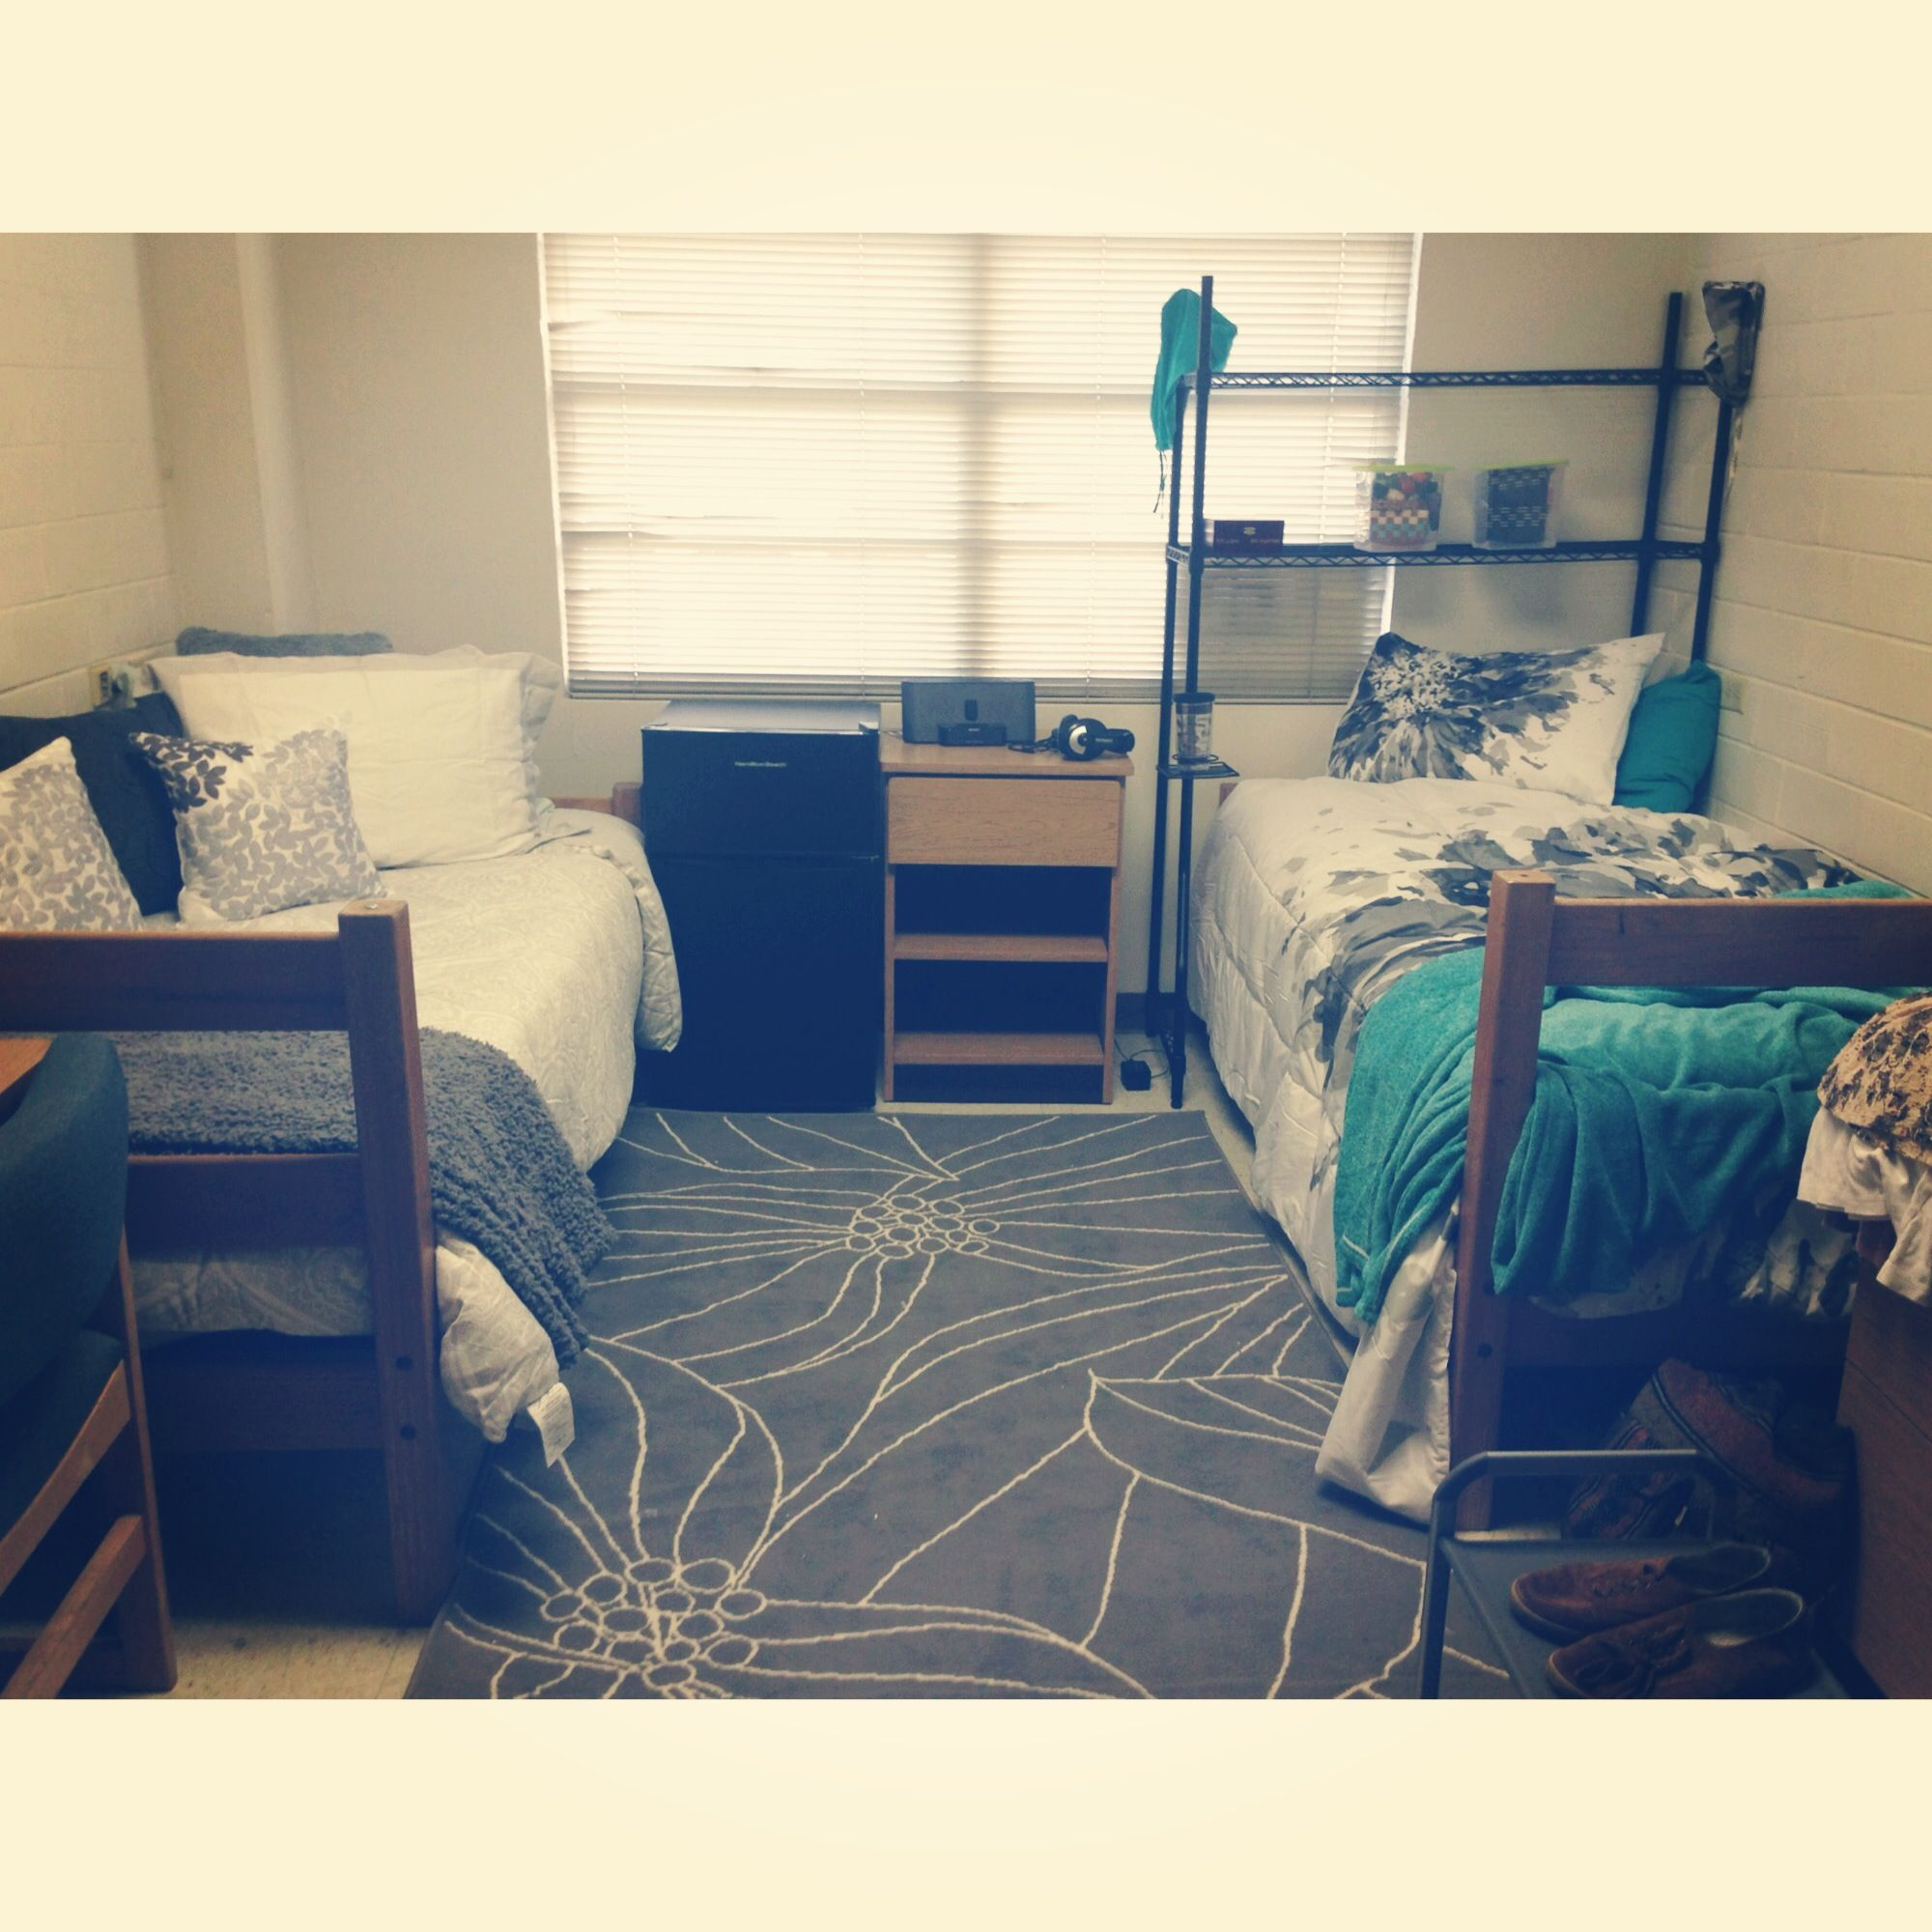 Best Our Dorm Room In Progress Gray White With A Pop Of Teal 400 x 300